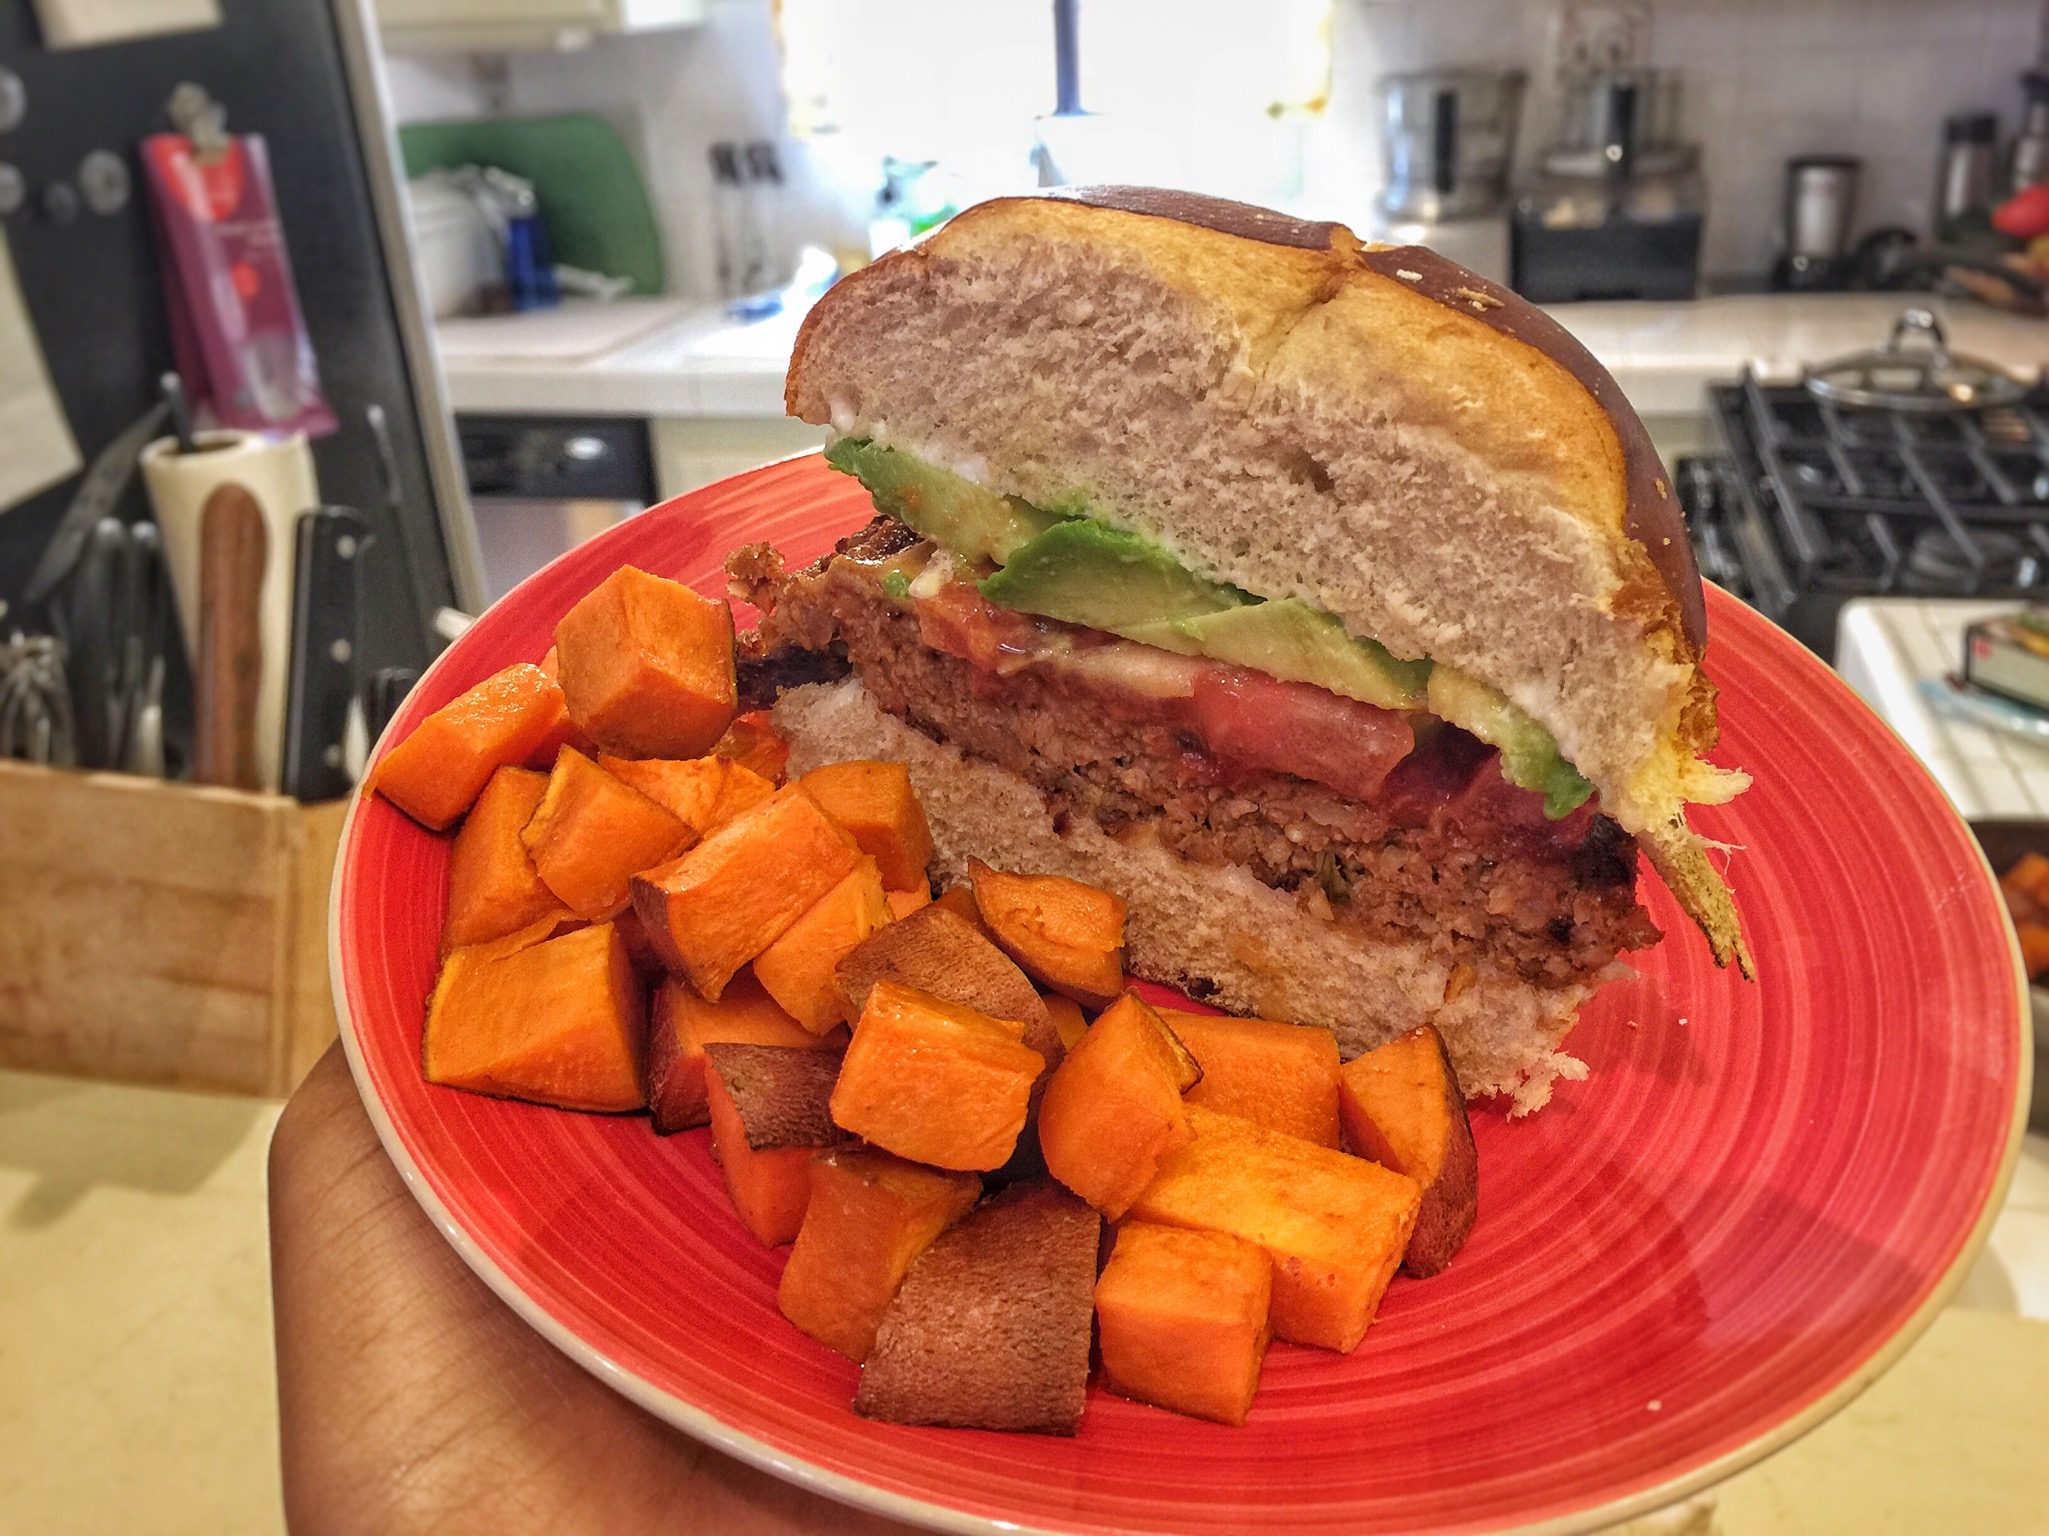 Amy's Kitchen Quarter Pound Veggie Burger with Baked Yams